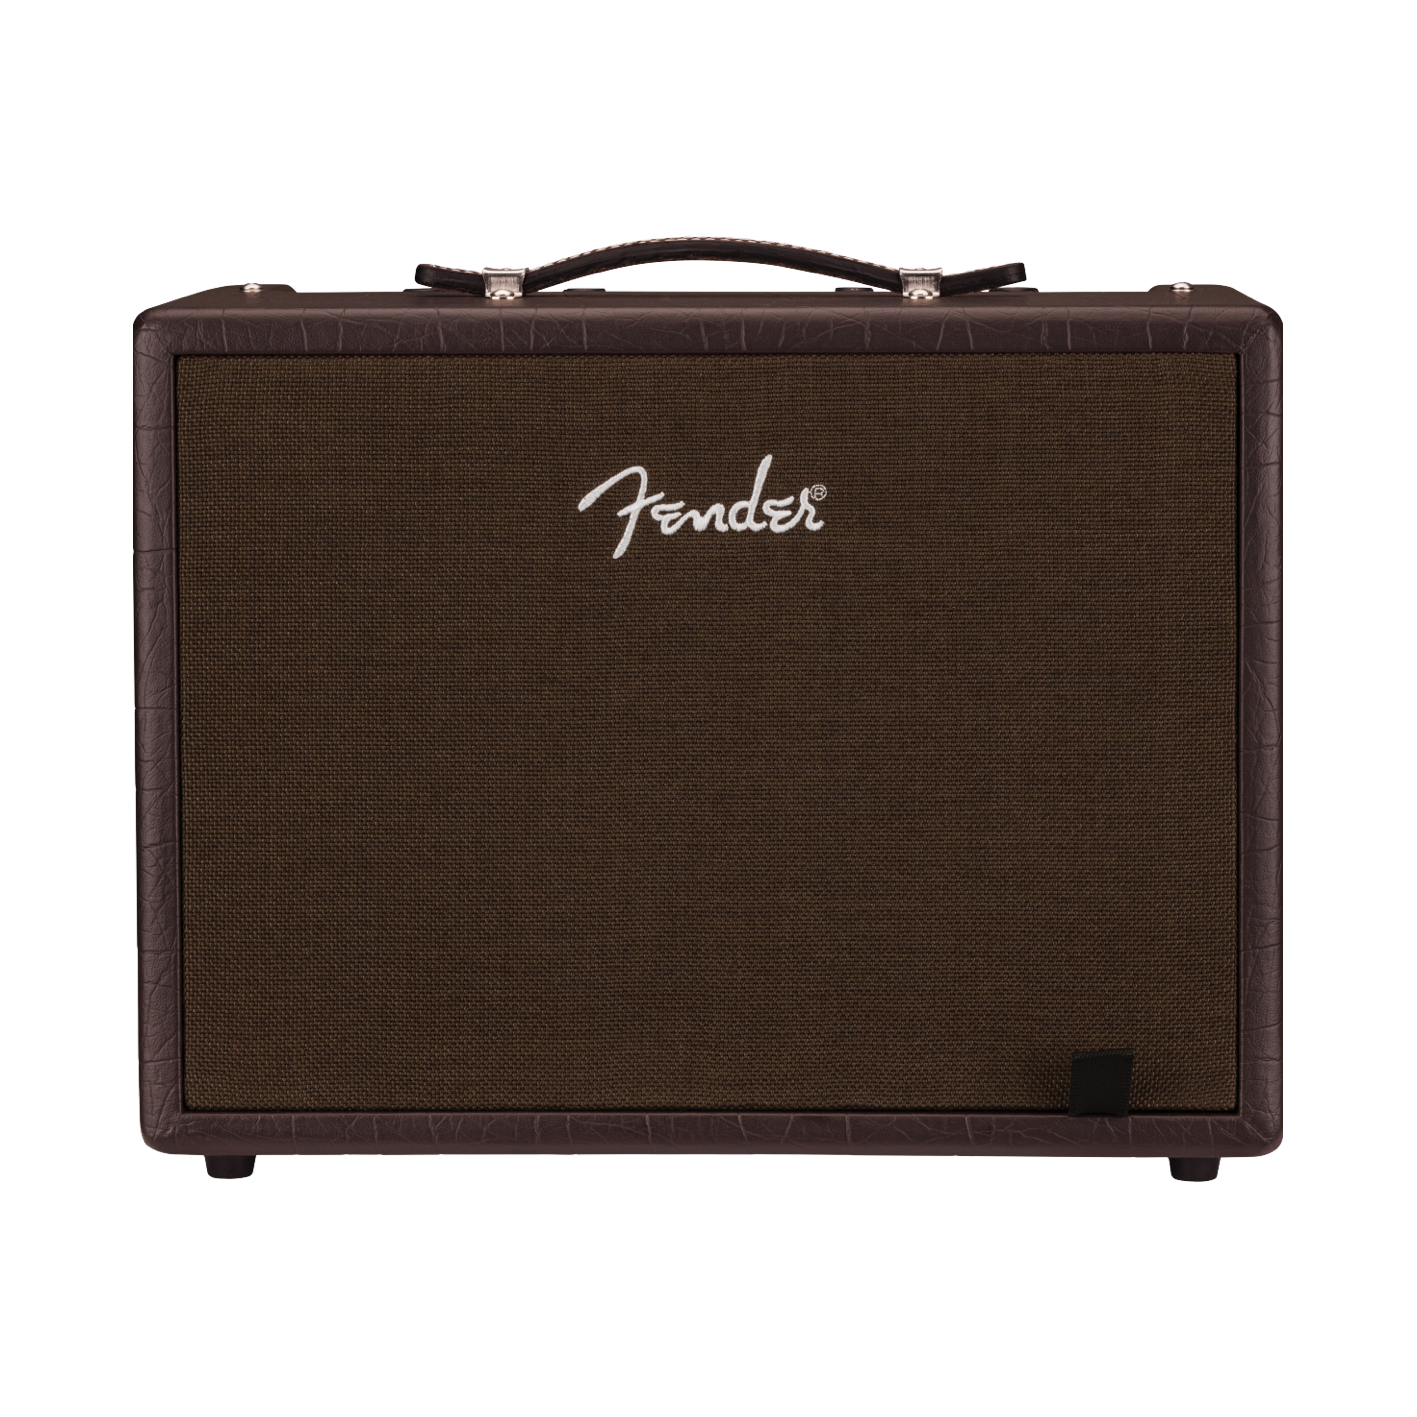 Fender Acoustic Jr Acoustic Amp